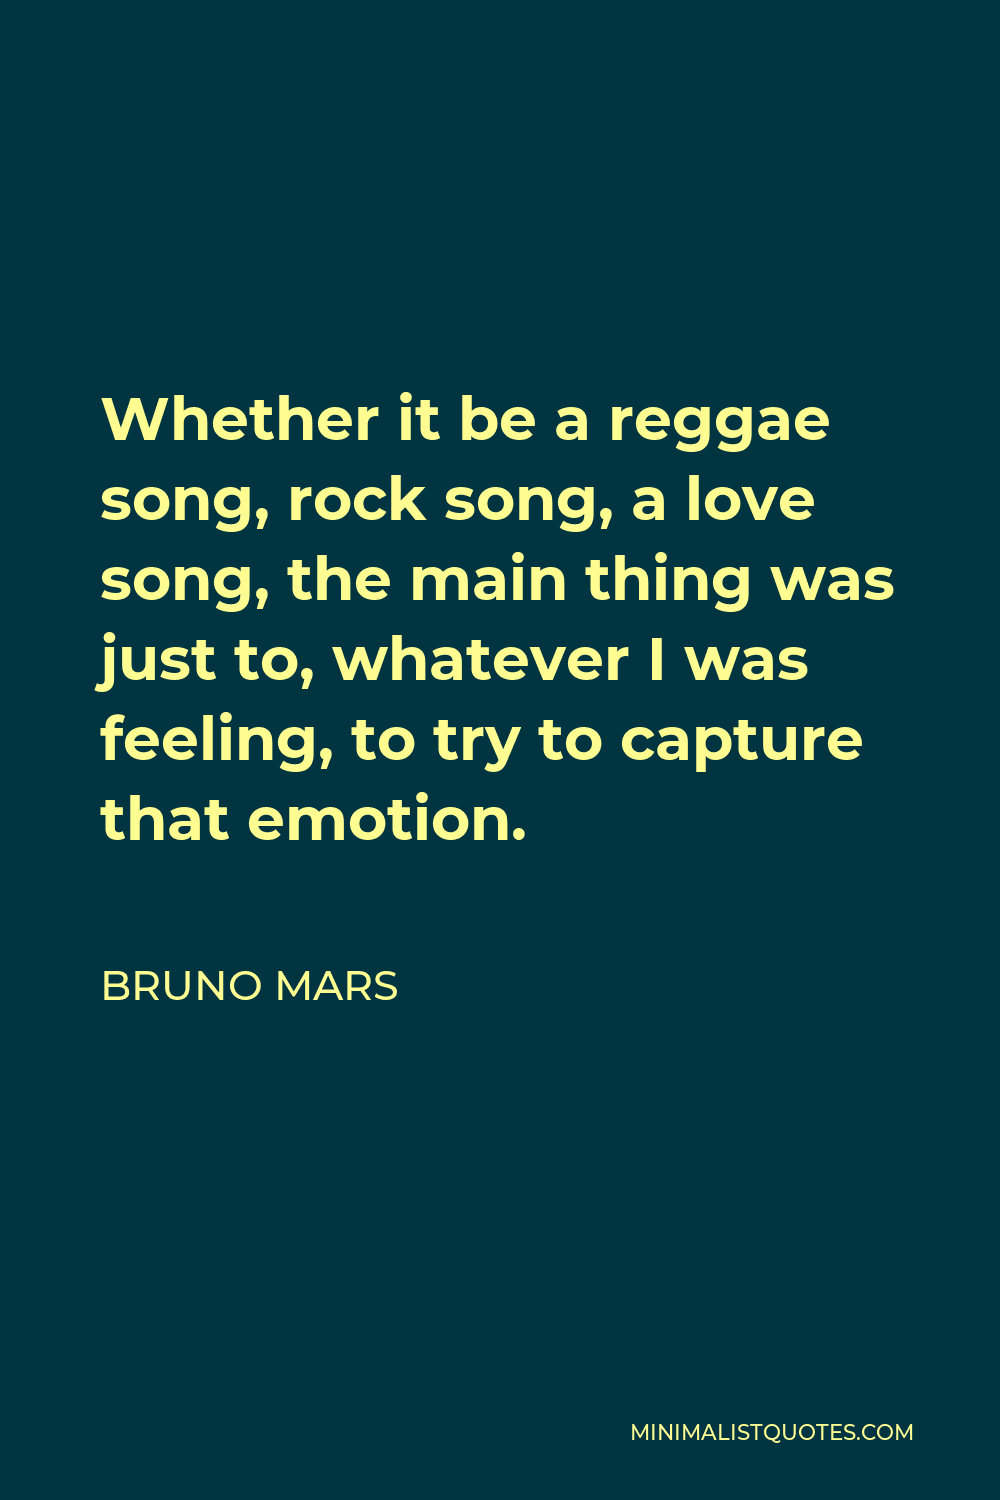 Bruno Mars Quote - Whether it be a reggae song, rock song, a love song, the main thing was just to, whatever I was feeling, to try to capture that emotion.